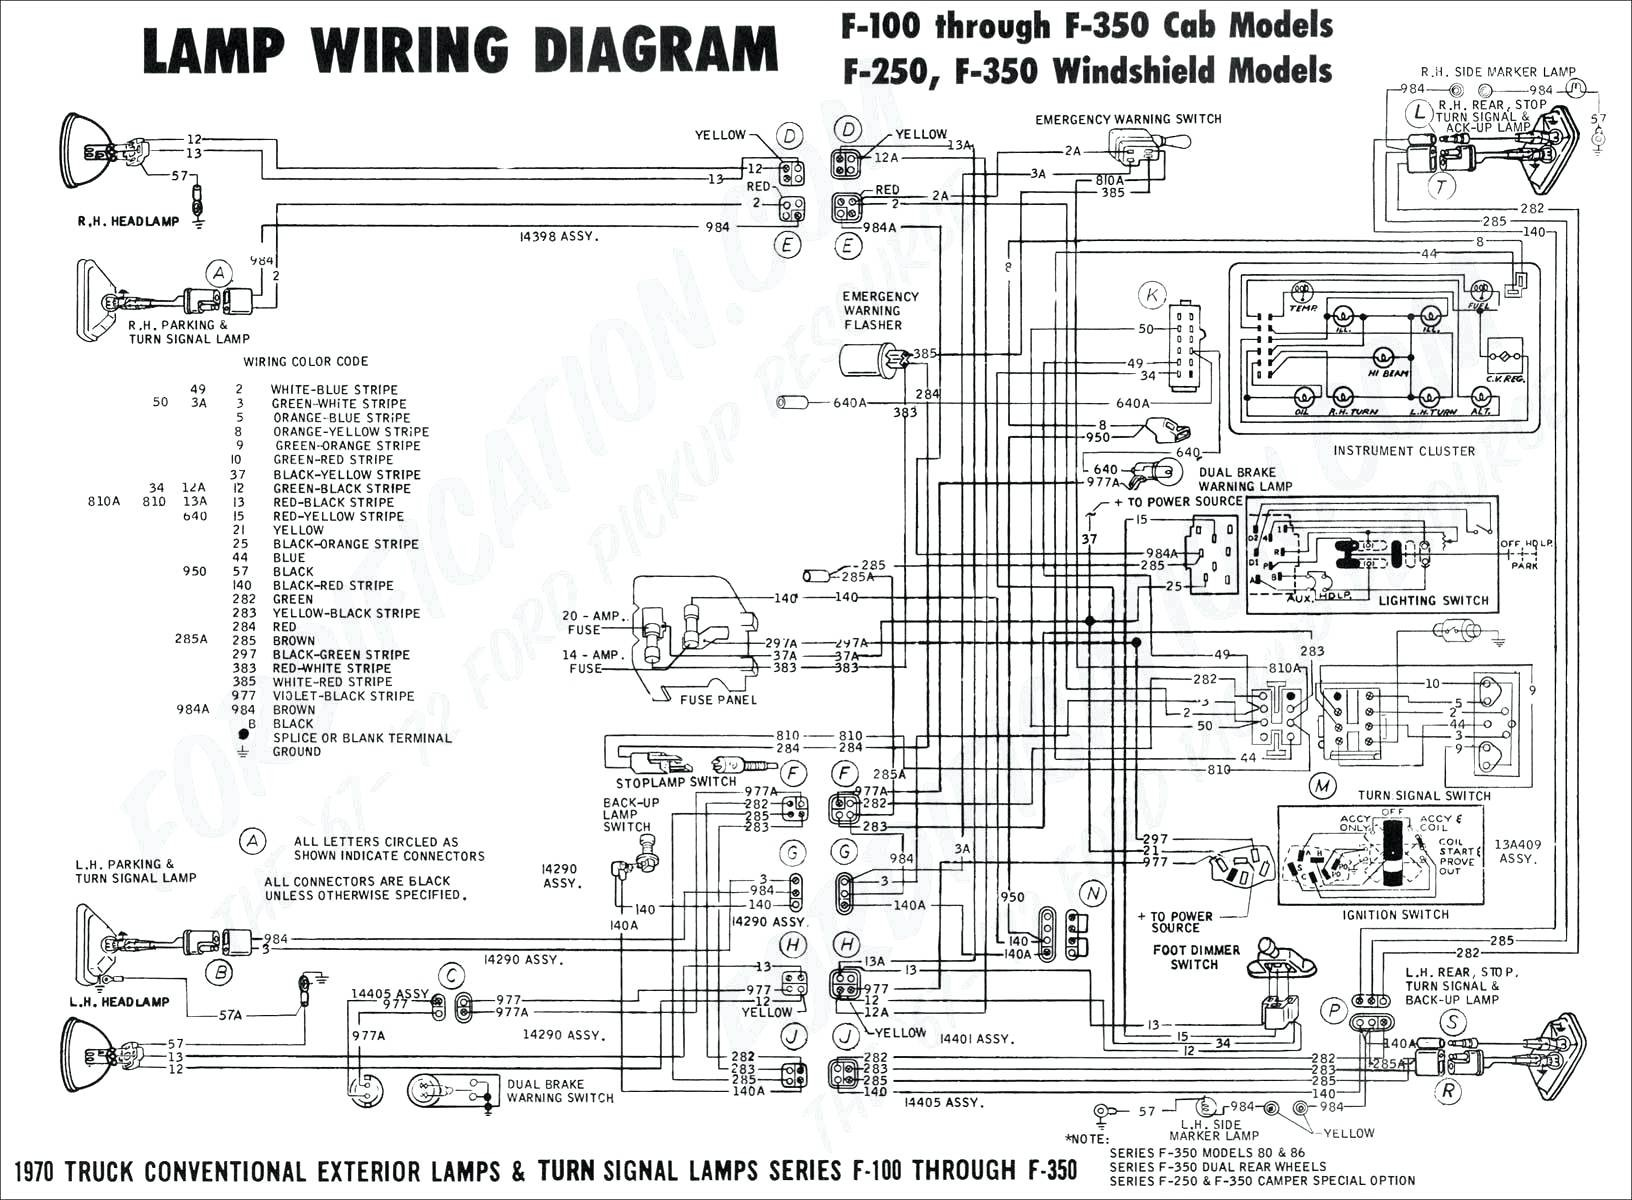 Taco Zone Valve Wiring Diagram Honeywell Zoning 555 102 Valves Security Camera Of Related Post Mitchell Automotive Diagrams